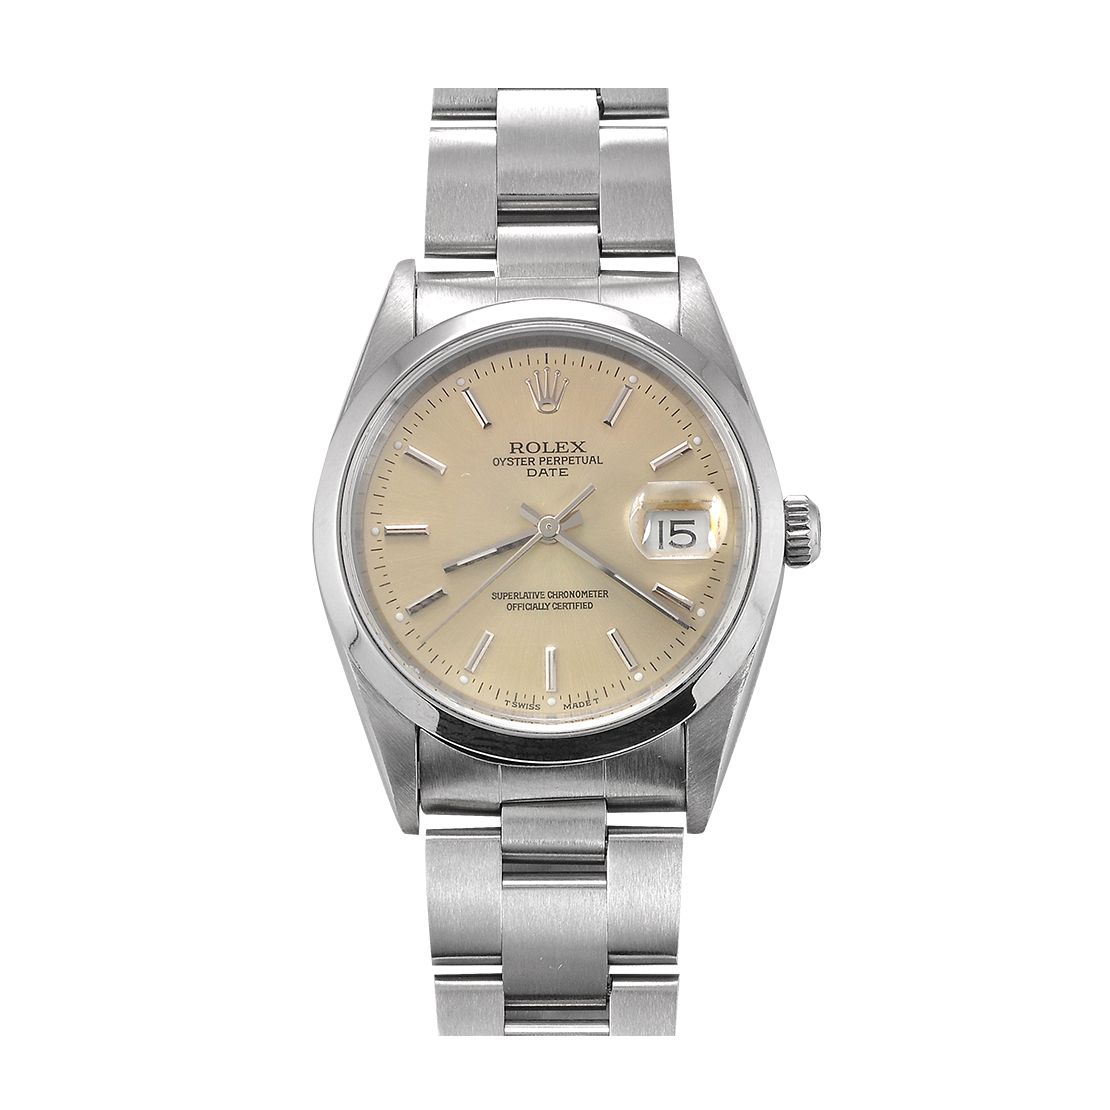 Rolex Date Luxury Watch